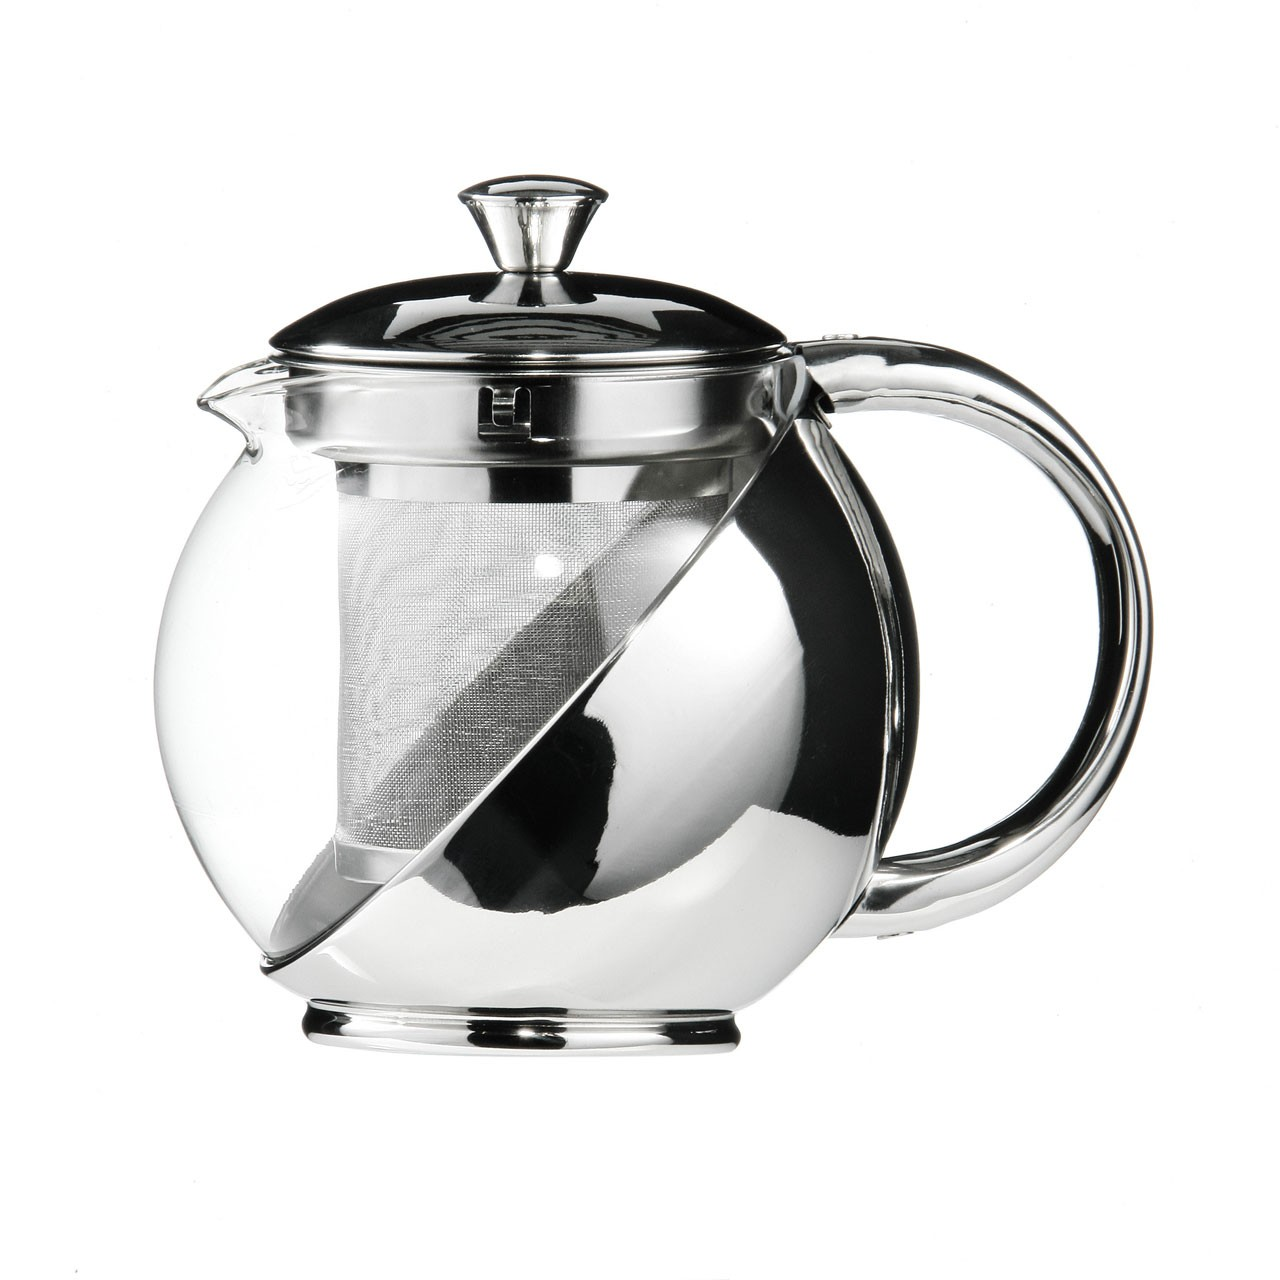 Teapot with Infuser, 500 ml, Stainless Steel